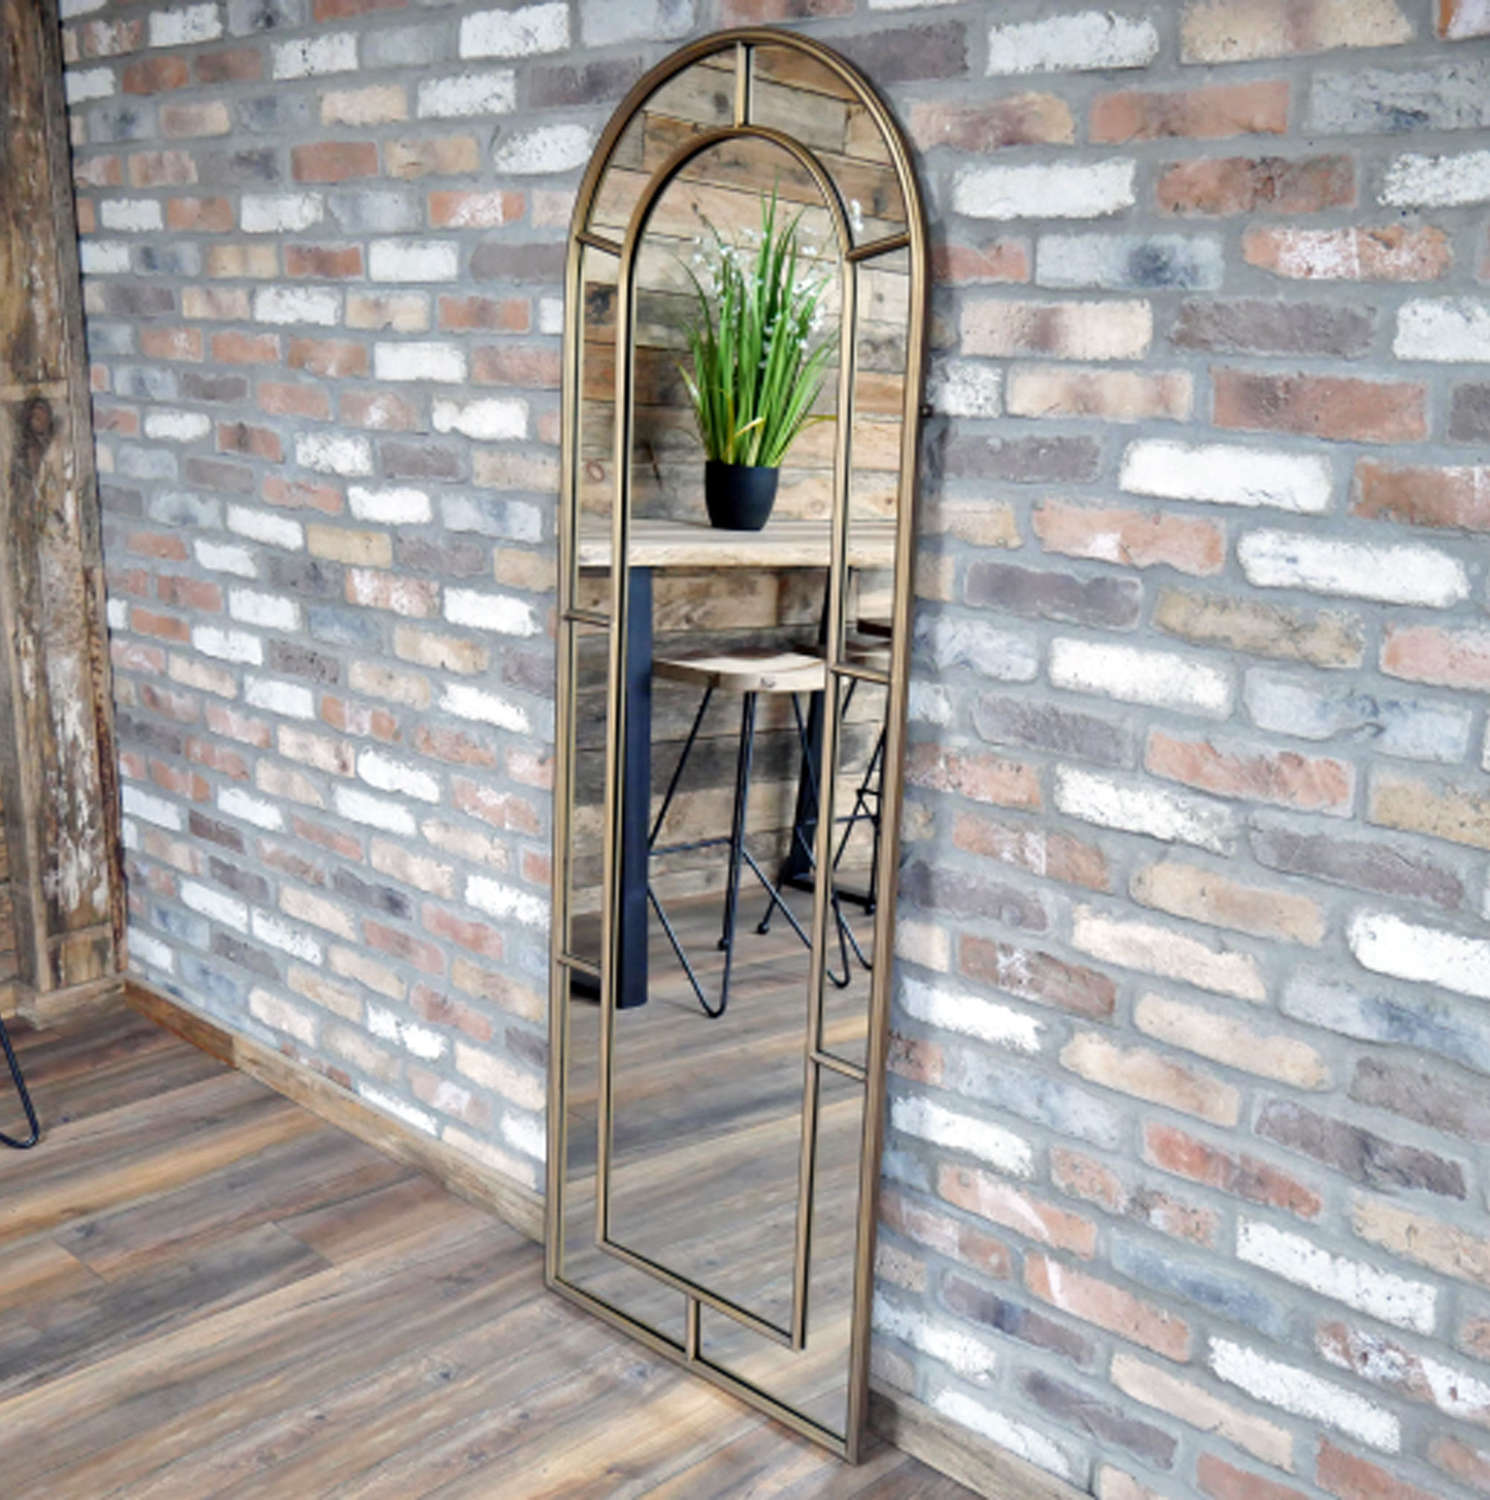 Antique gold large metal arched window mirror